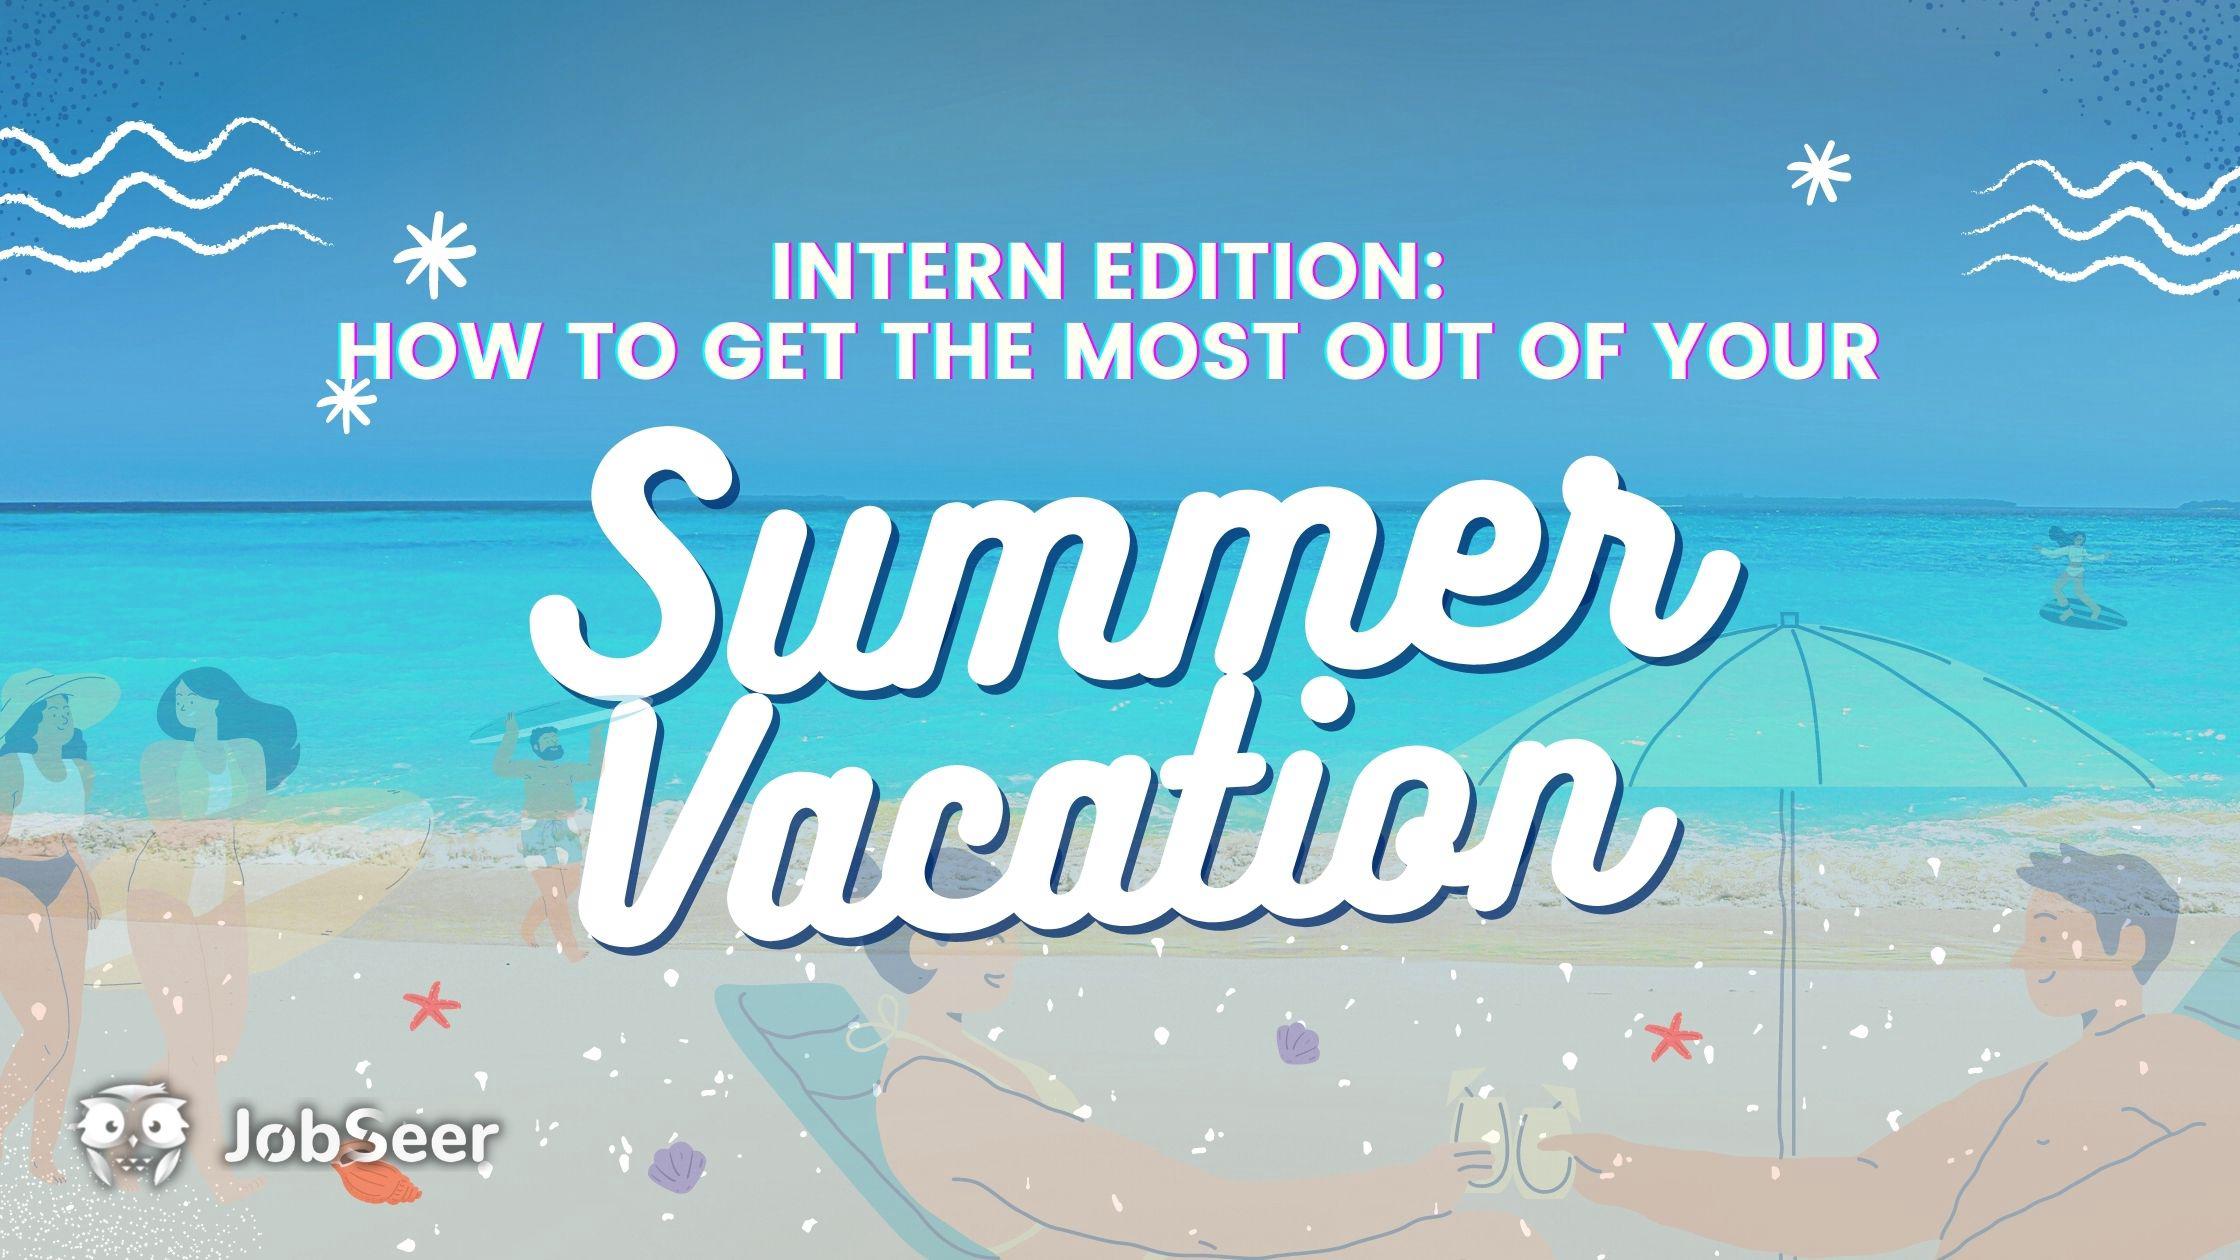 How To Get The Most Out Of Your Internship Experience During Summer Vacation